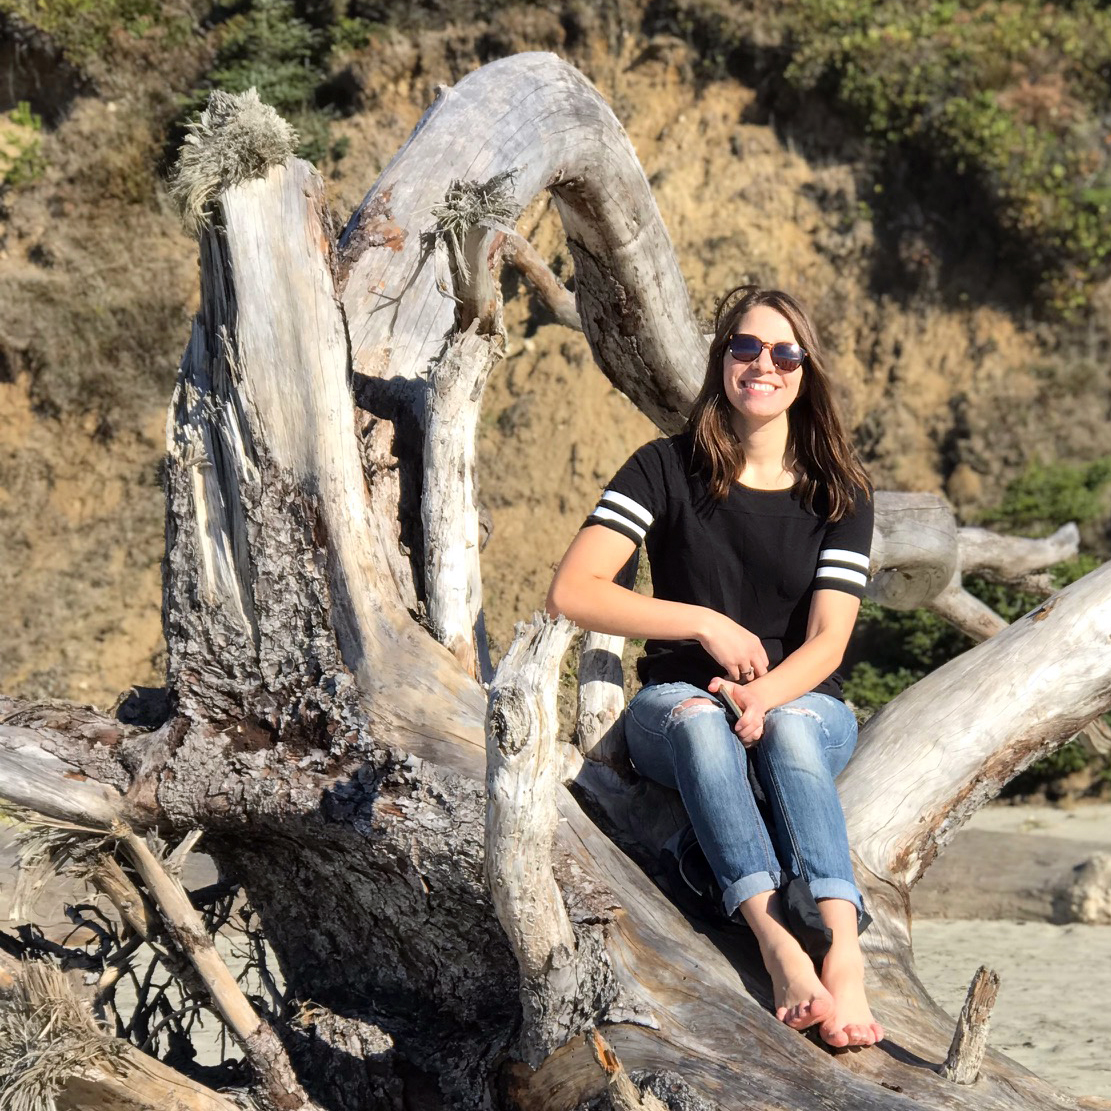 Abbygale sitting on driftwood at the beach